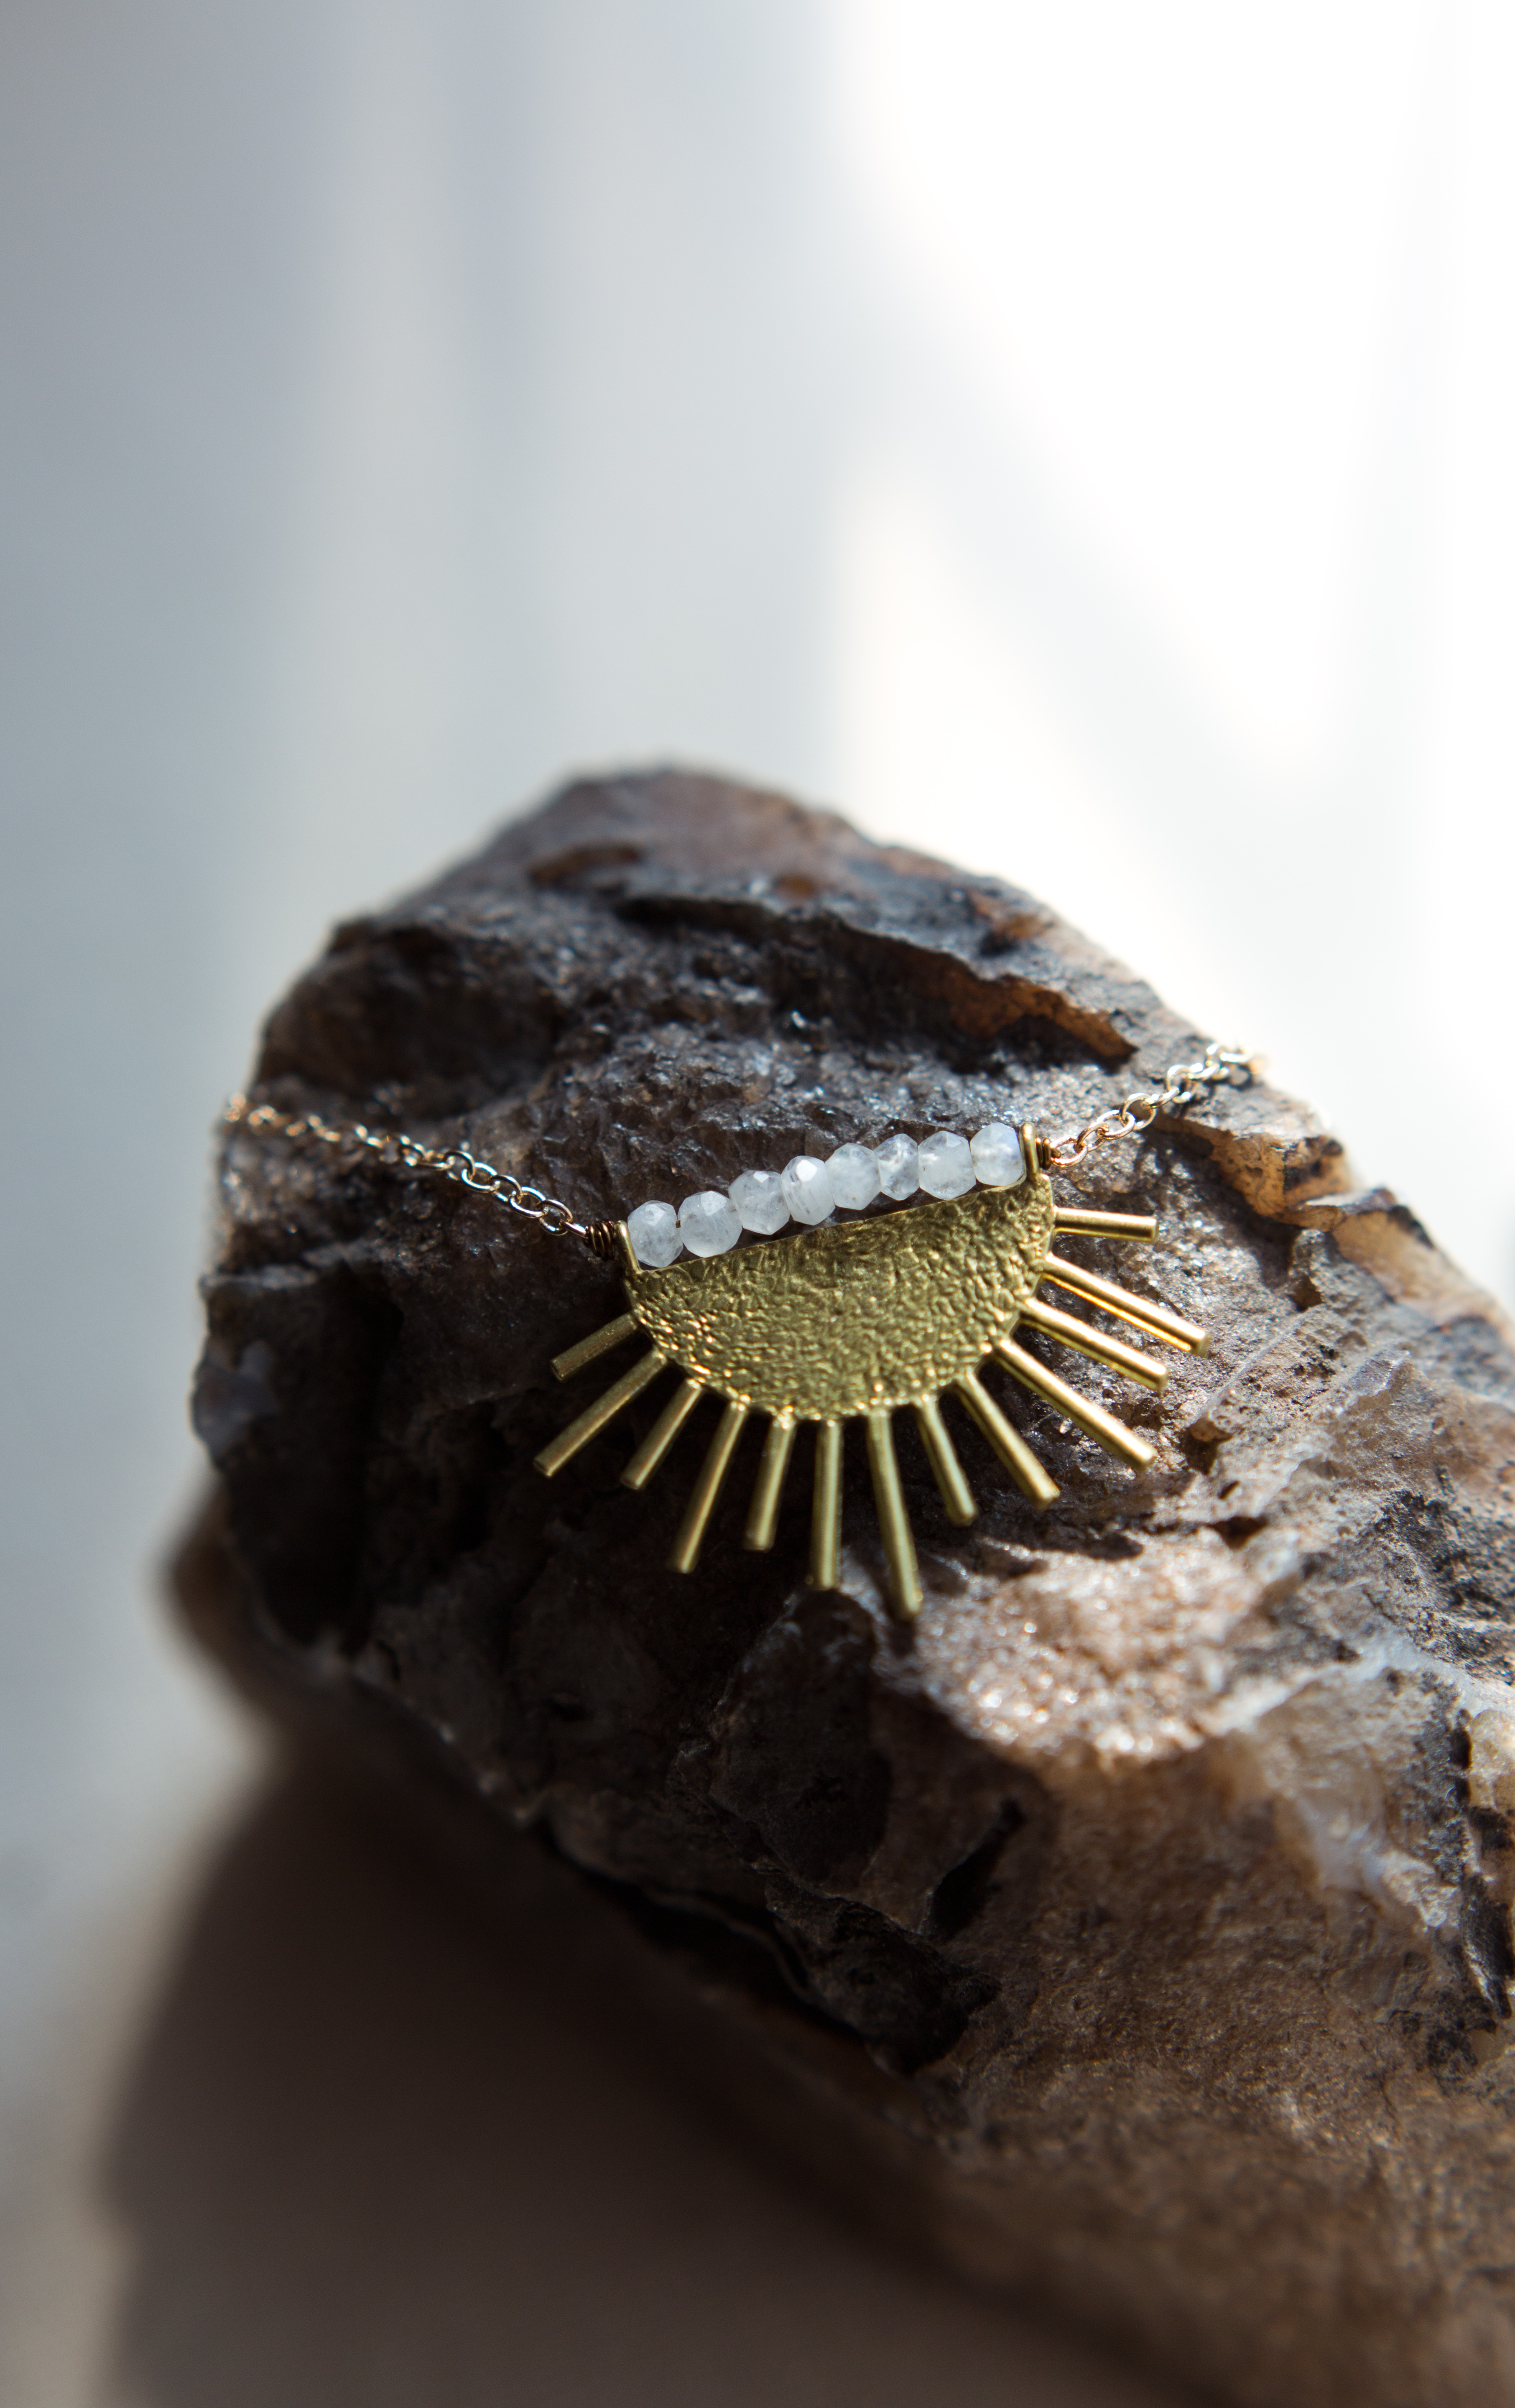 a sun pendant on a gold necklace sits on a rock. Product photography matters by Elizabeth A. Images